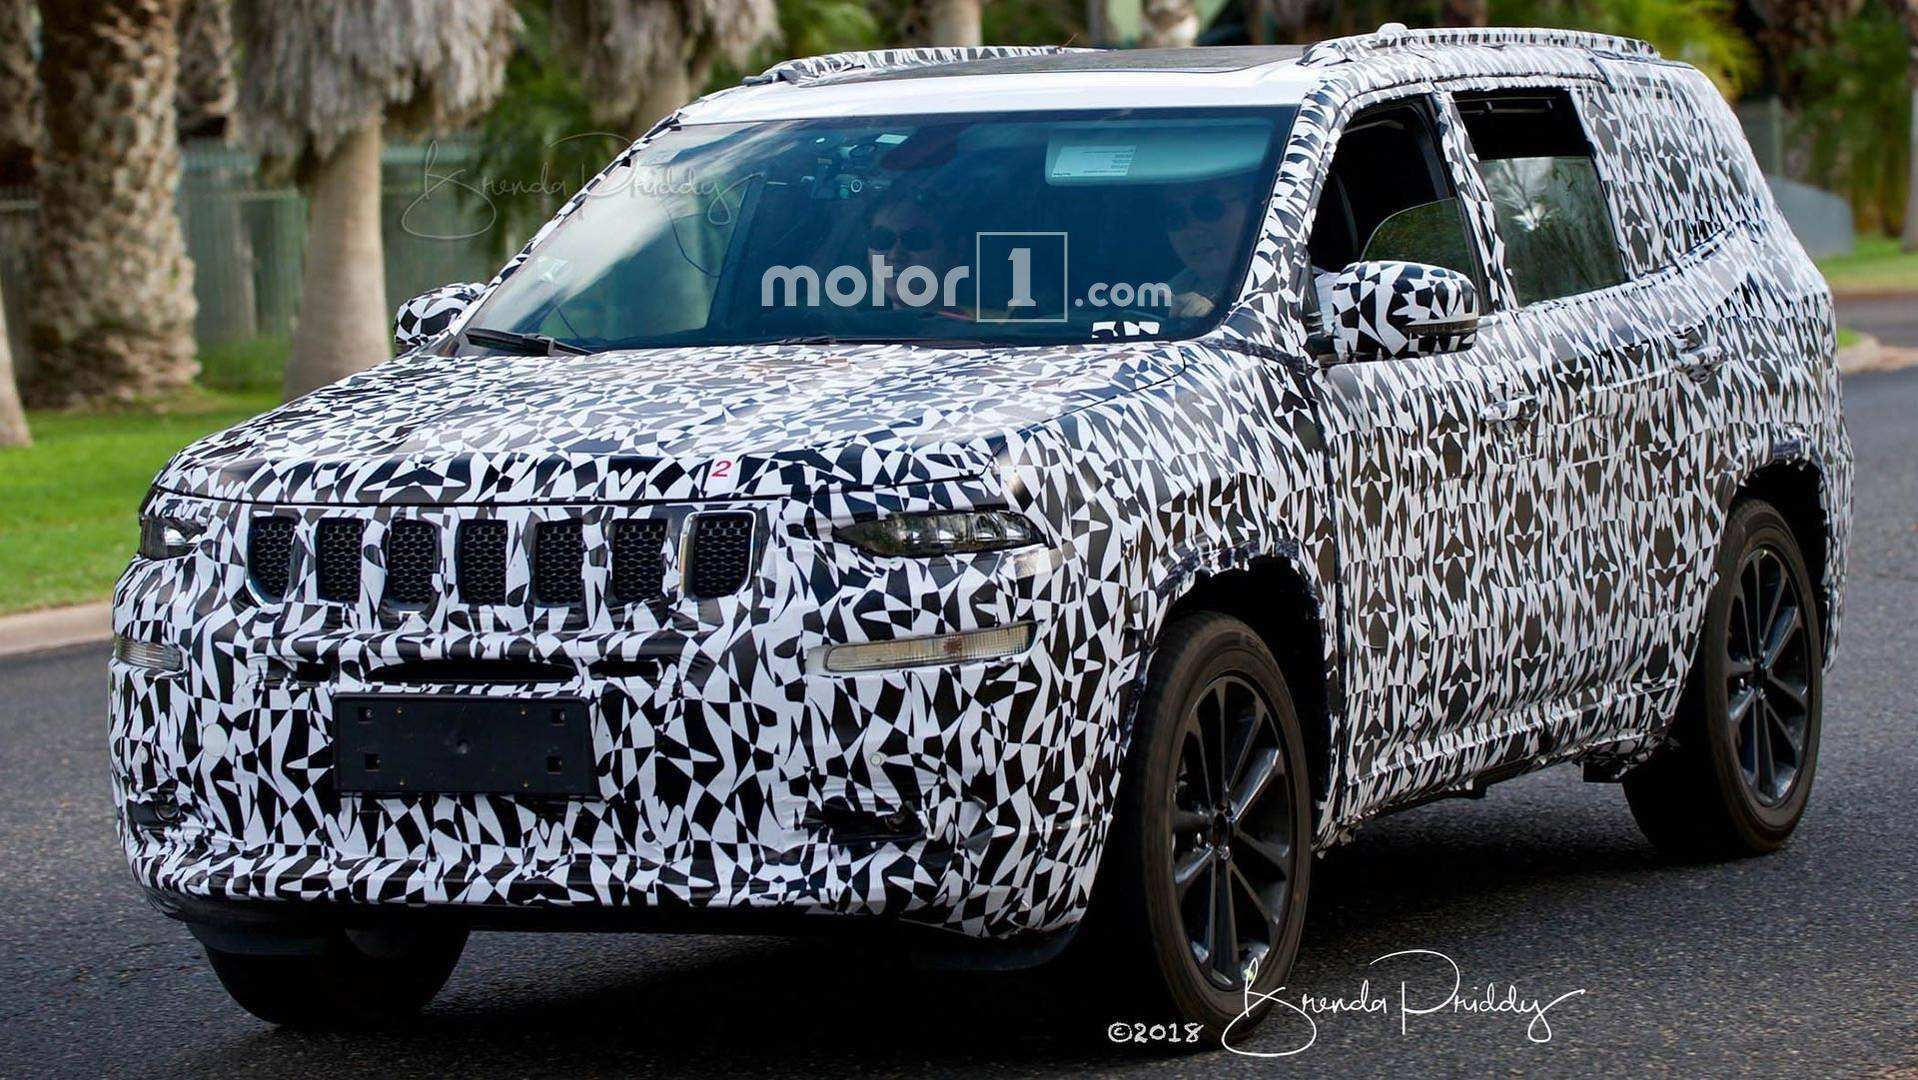 96 All New 2020 Jeep Wagoneer Images with 2020 Jeep Wagoneer